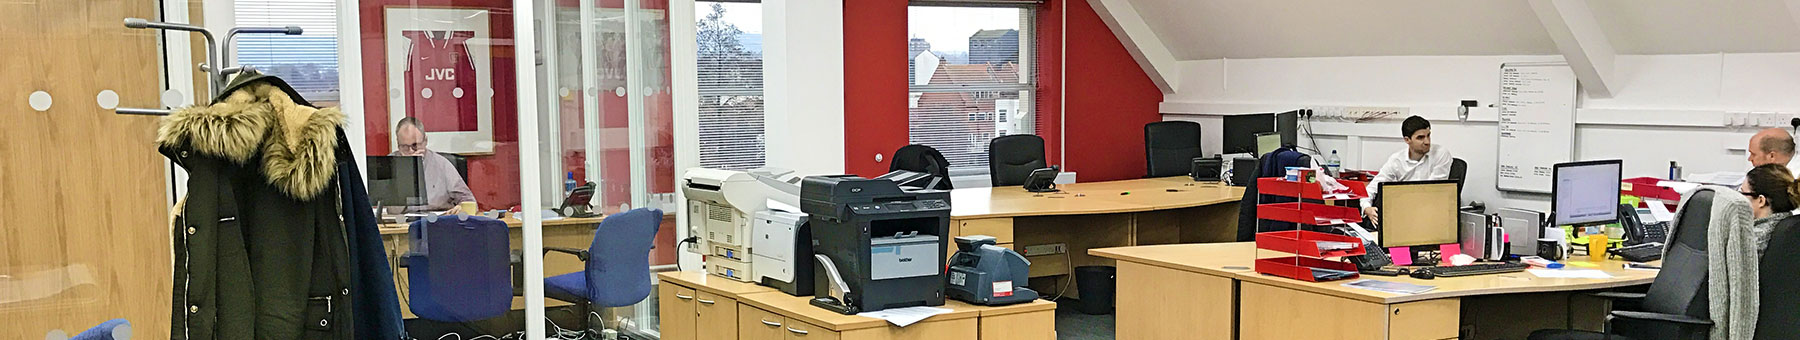 Office Refurbishment in Bristol for Options Resourcing